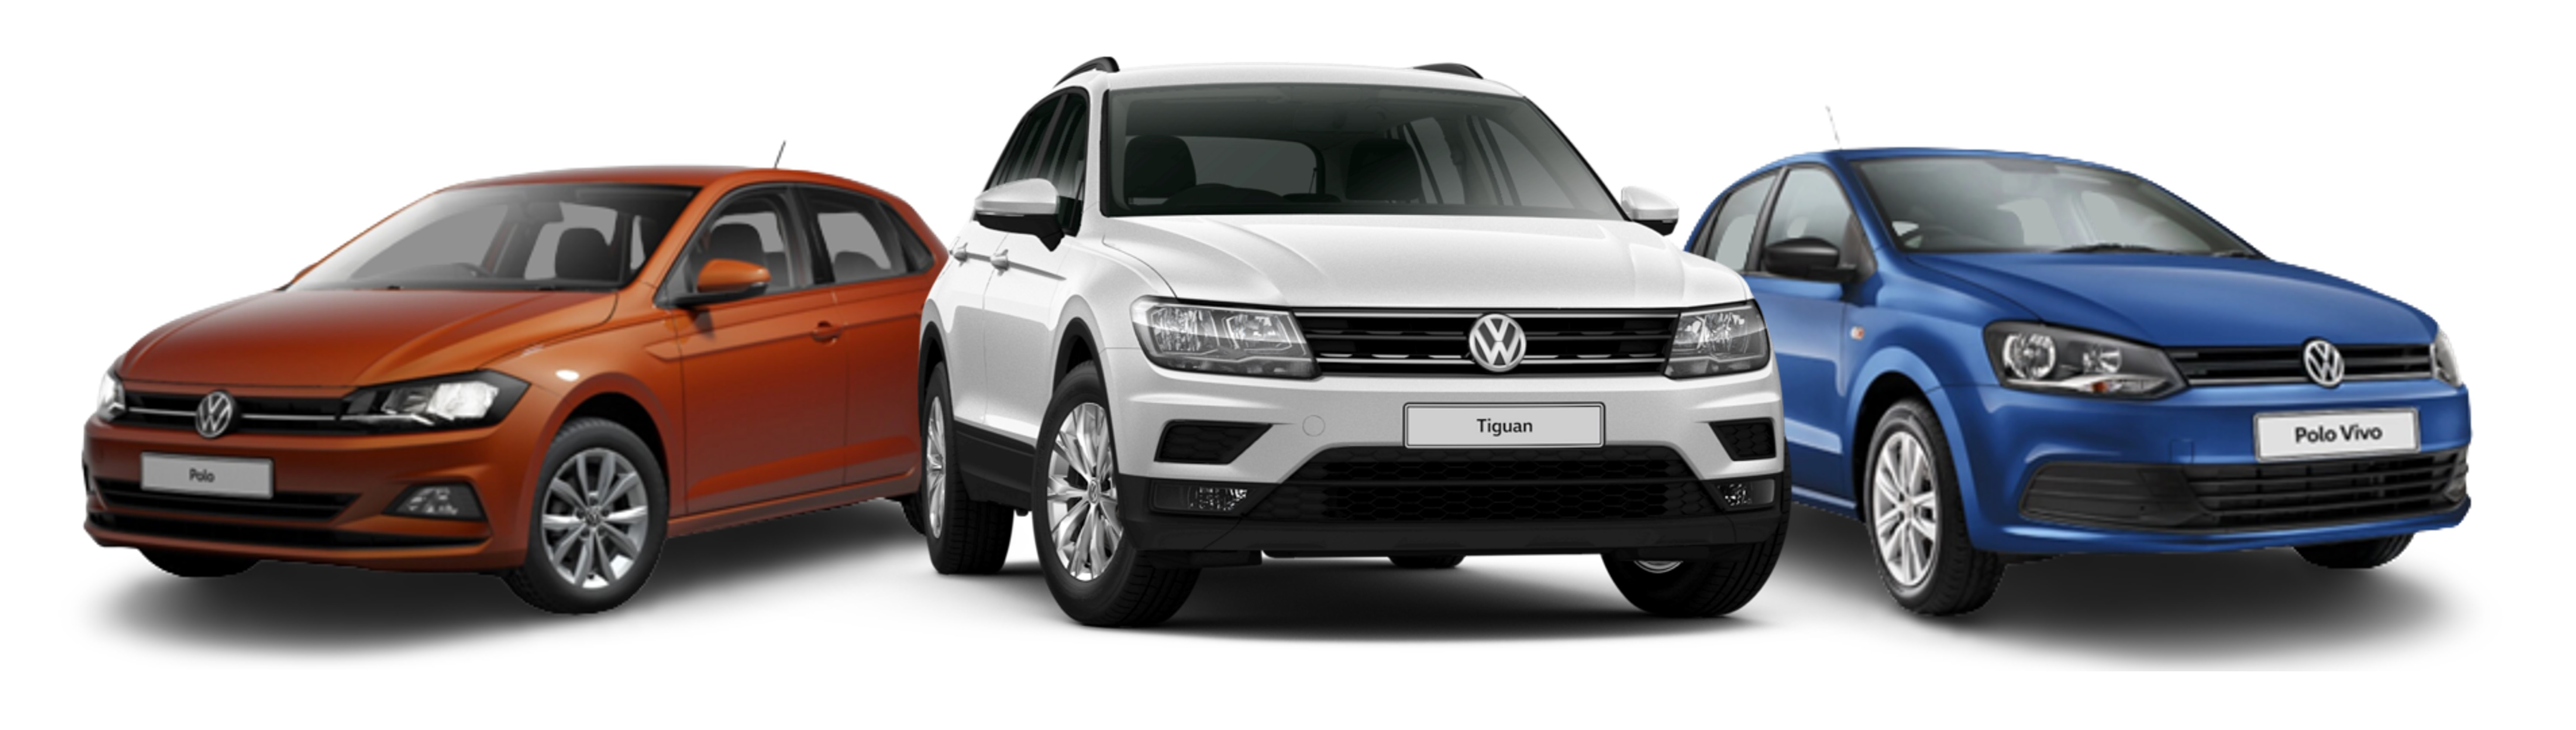 Get a 3 month Payment Holiday on any demo or used vehicle-Volkswagen banner